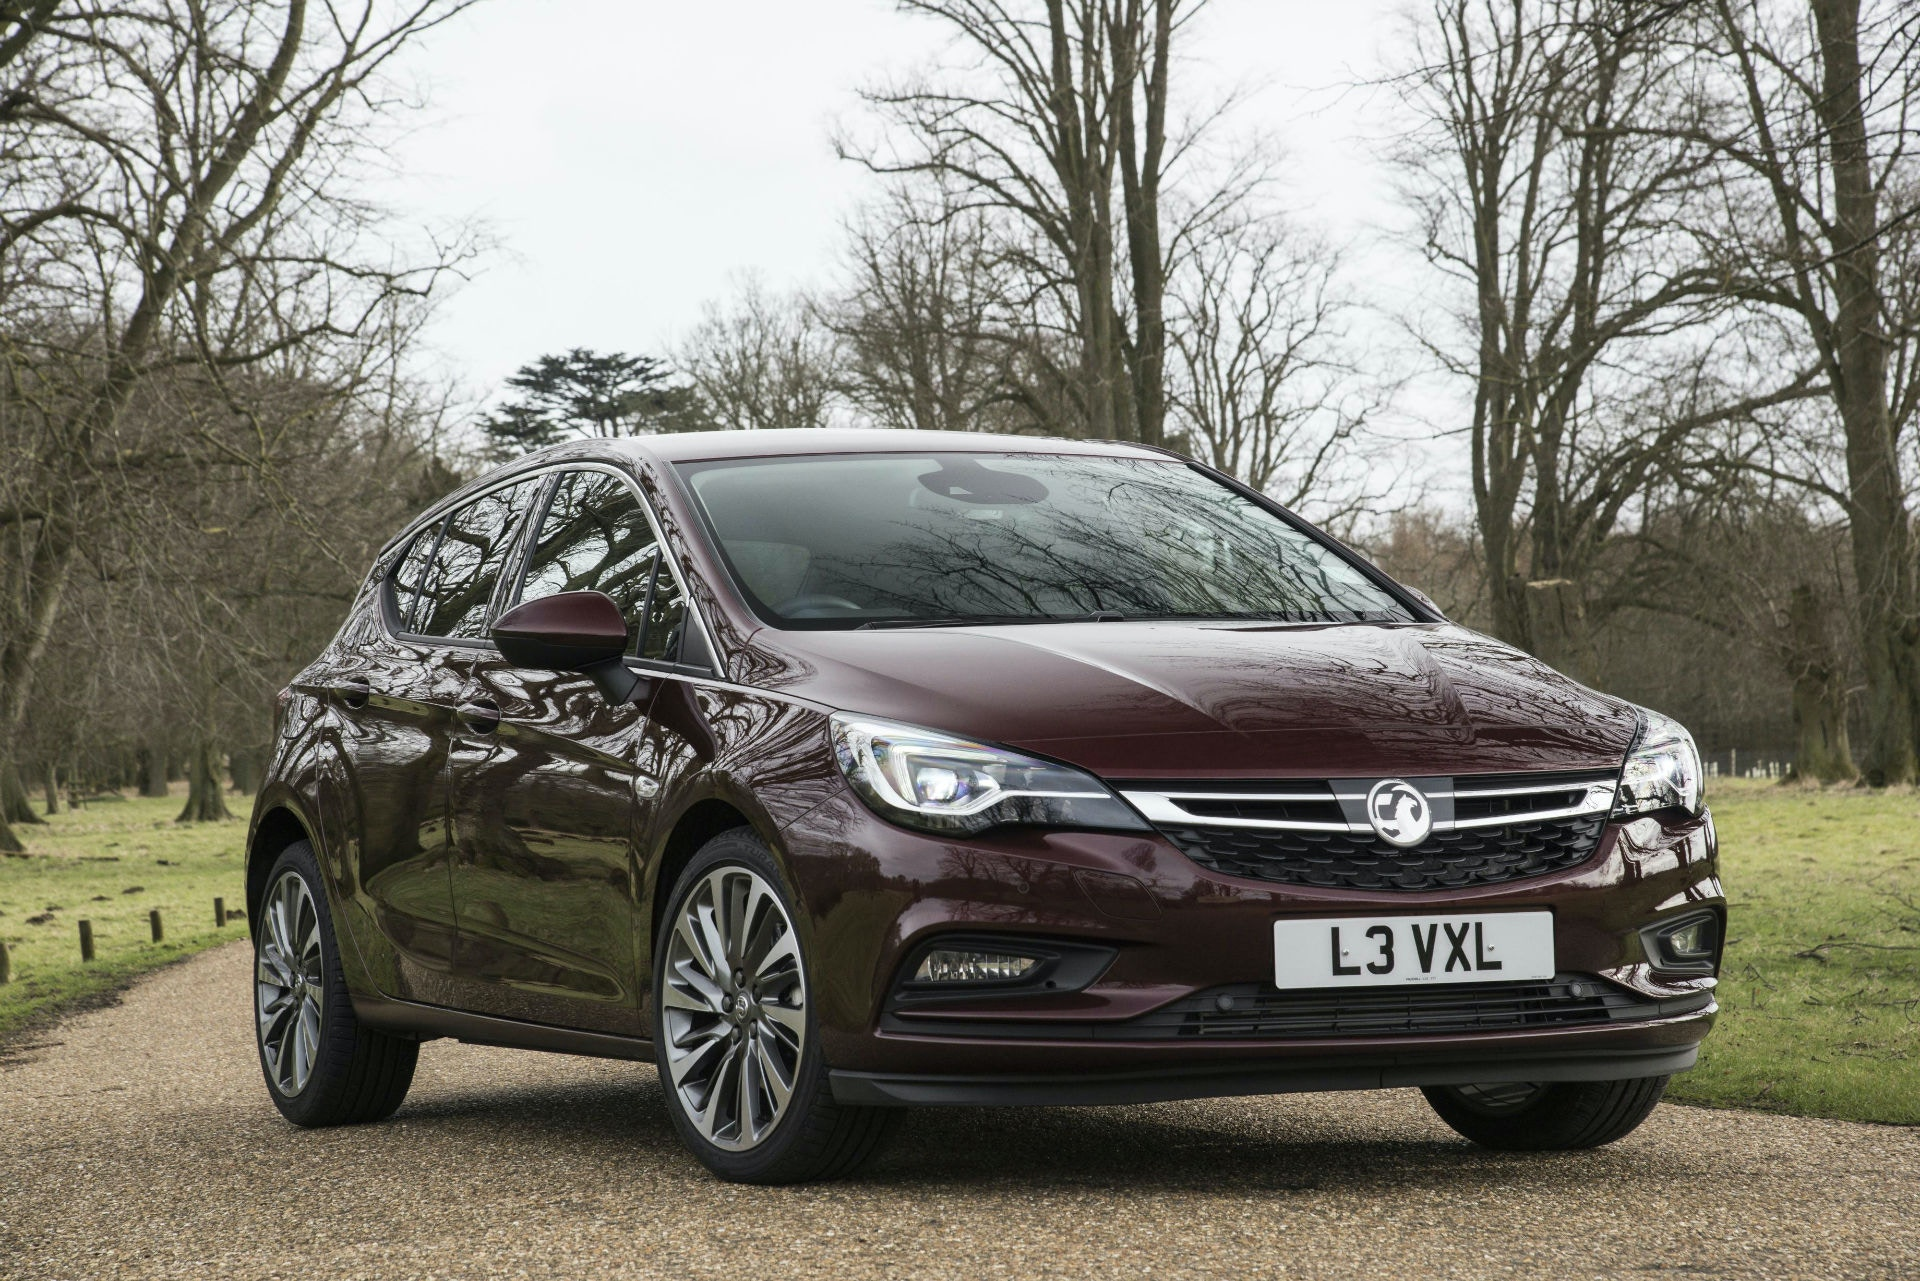 The Vauxhall Astra is well loved in the UK and it's a great hatchback for under £10,000.